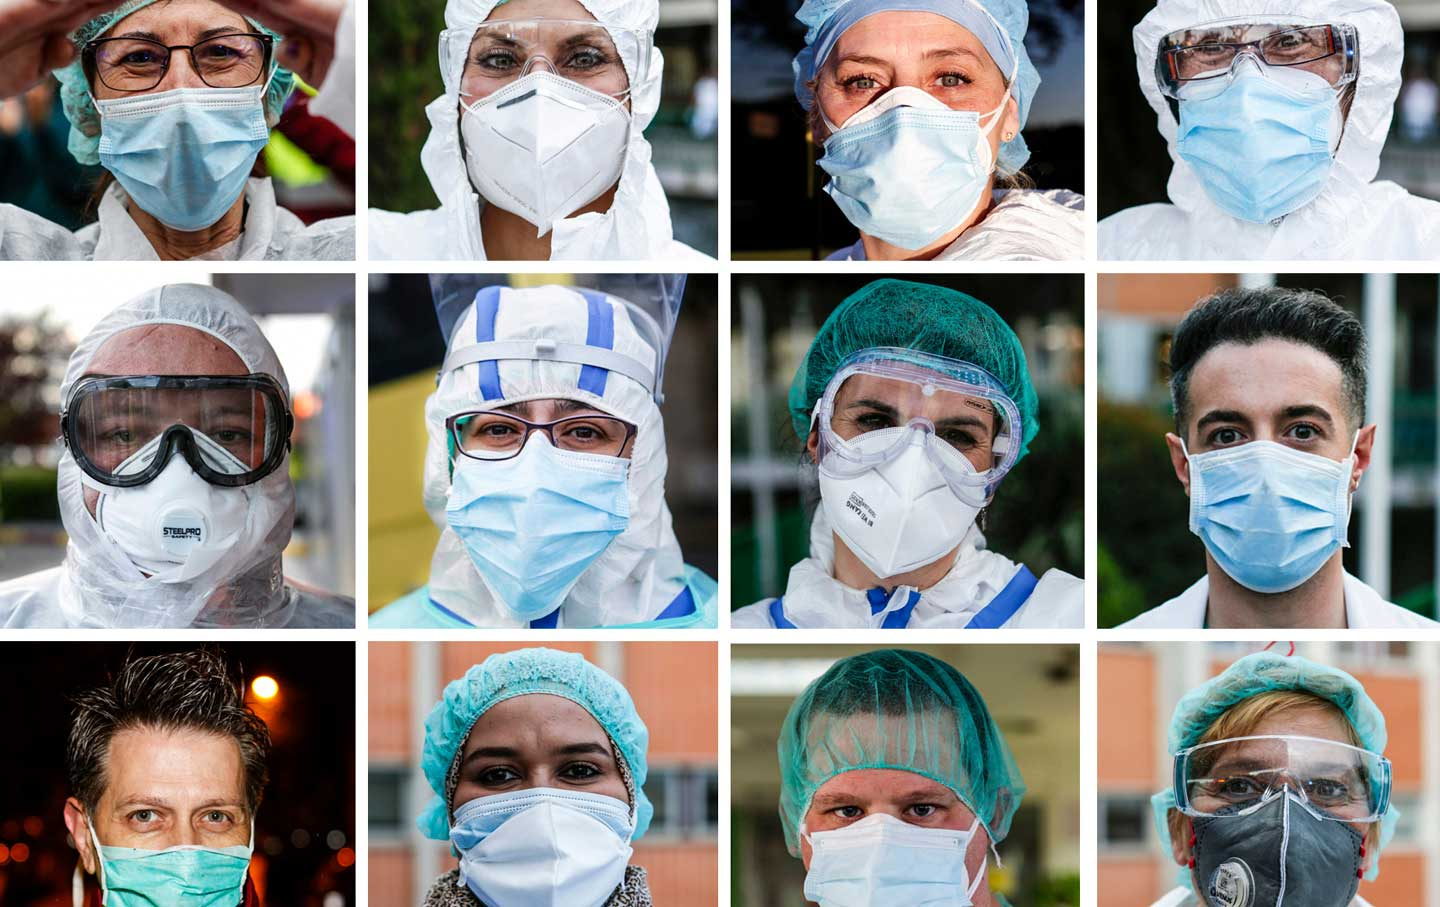 Washington Watch: The CDC's Rollback of Covid-19 Mask and Distancing Rules Earns a Rebuke From Nurses